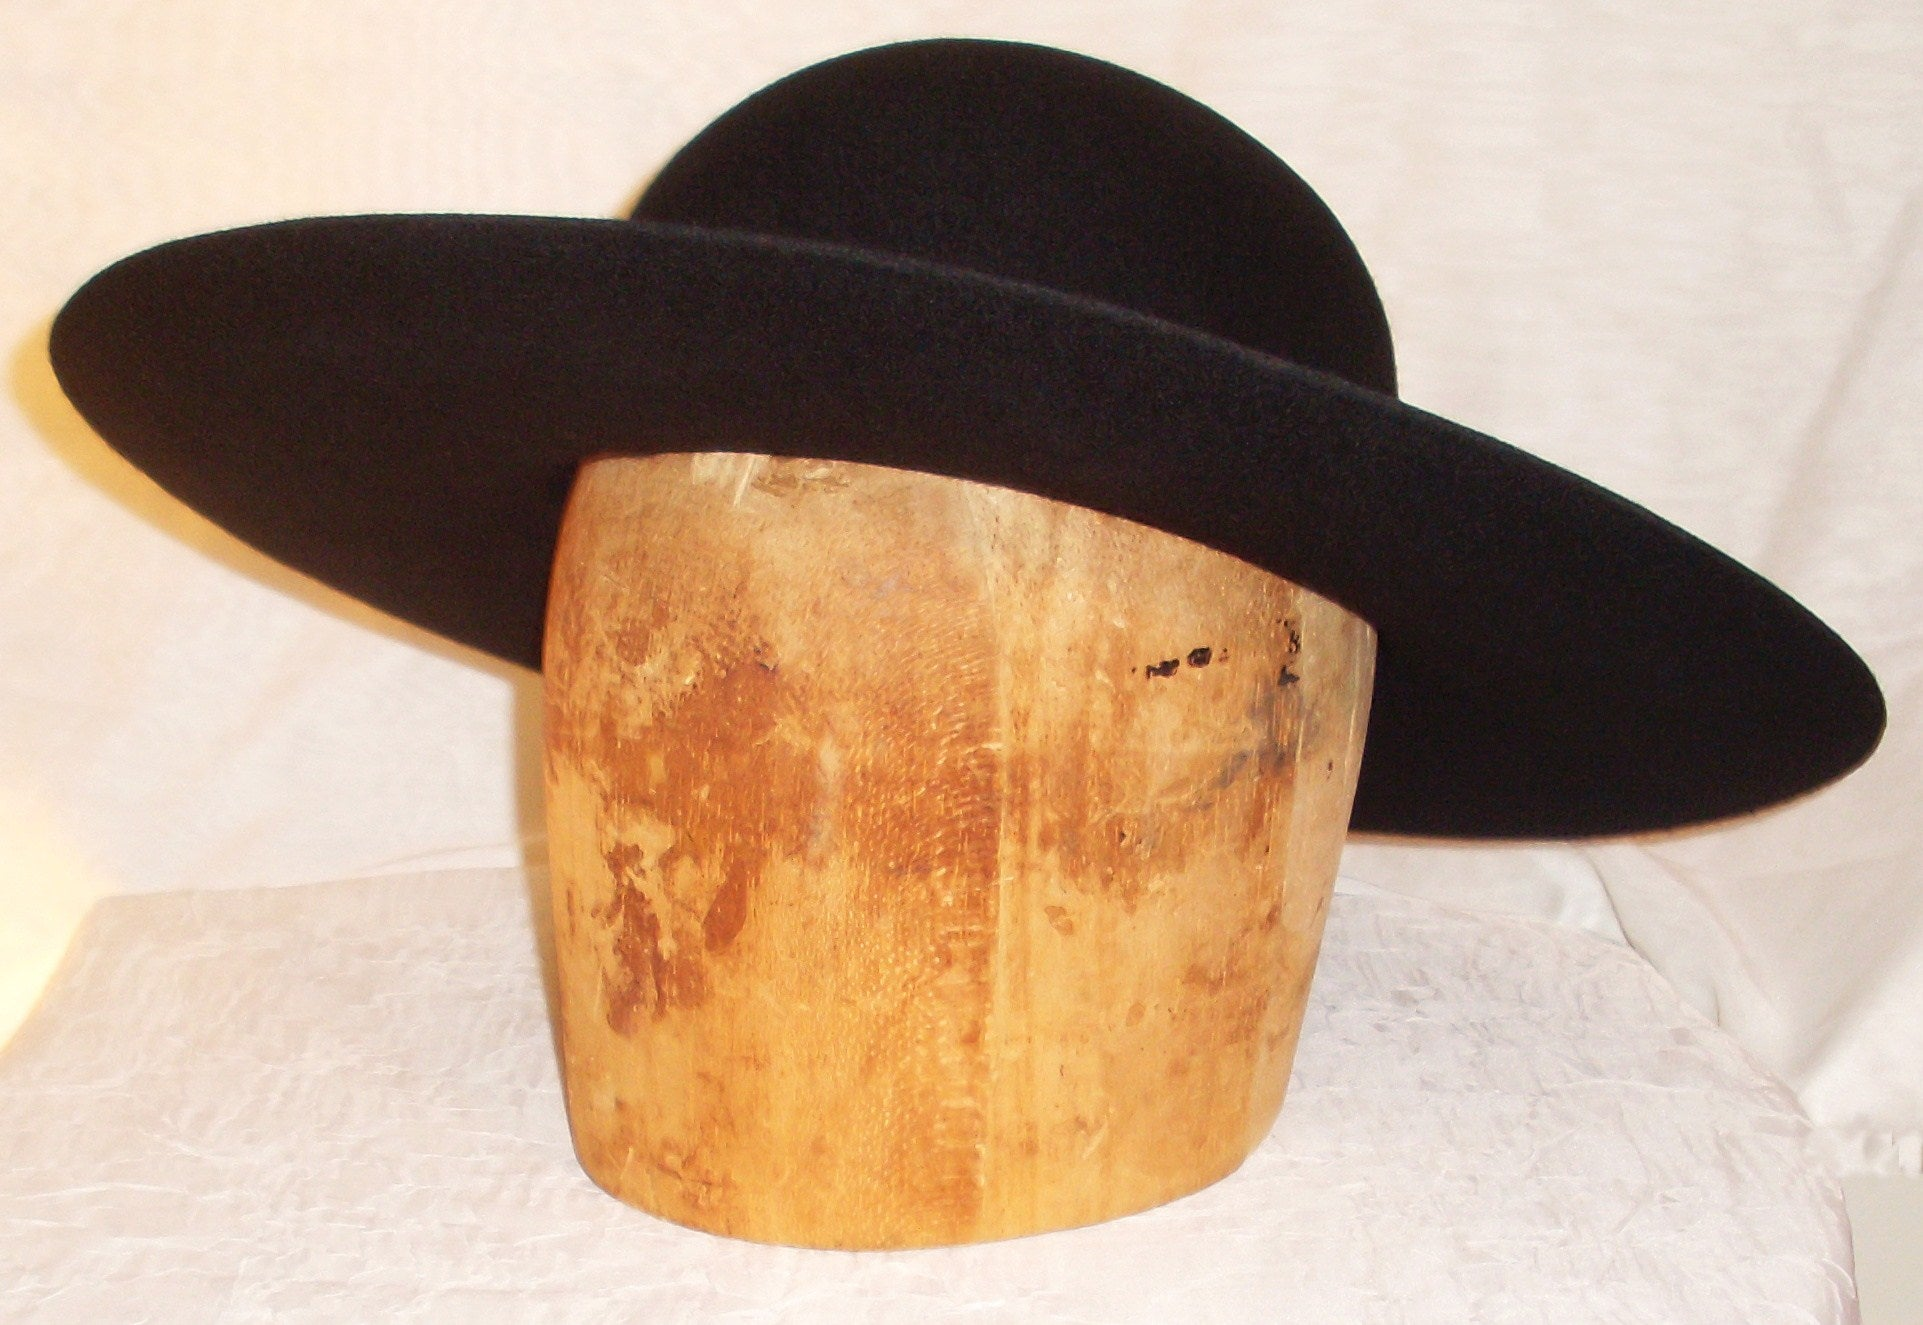 Cavalier Hat Blank from White Pavilion, side view. Choose this hat for living history, medieval, renaissance, pirate, cowboy, steampunk, vampire and many other costumes.